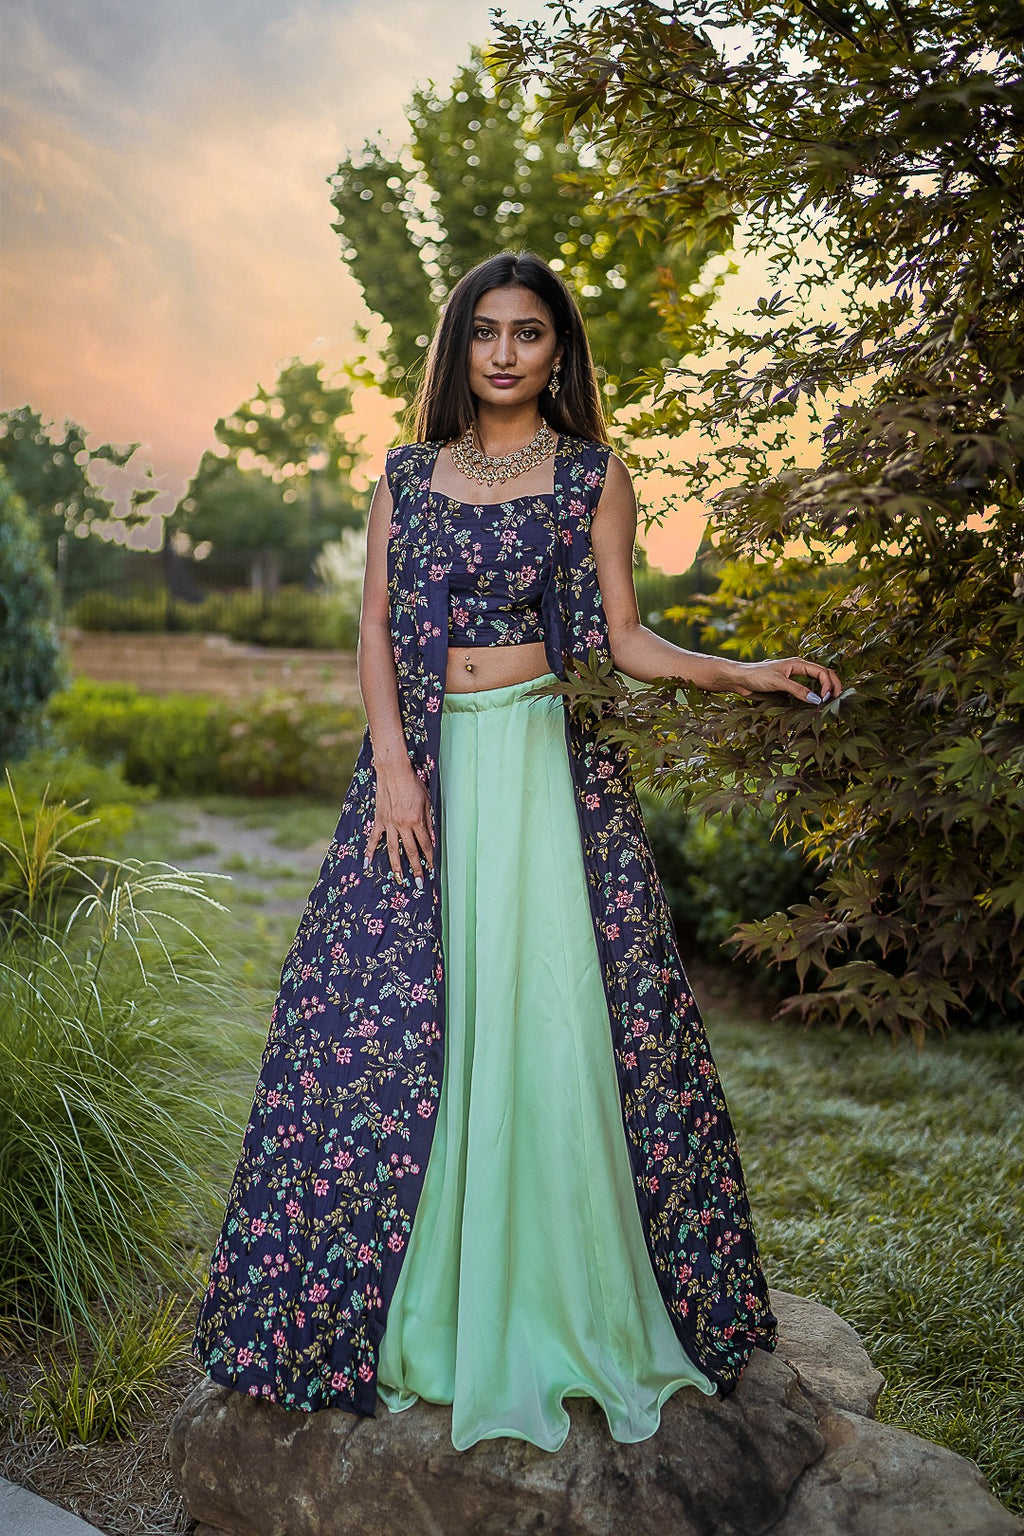 Navy Blue Indo Western Anarkali Jacket and Sea Green Satin Silk Skirt - Shop at Sushma Patel Boutique in Altanta, USA